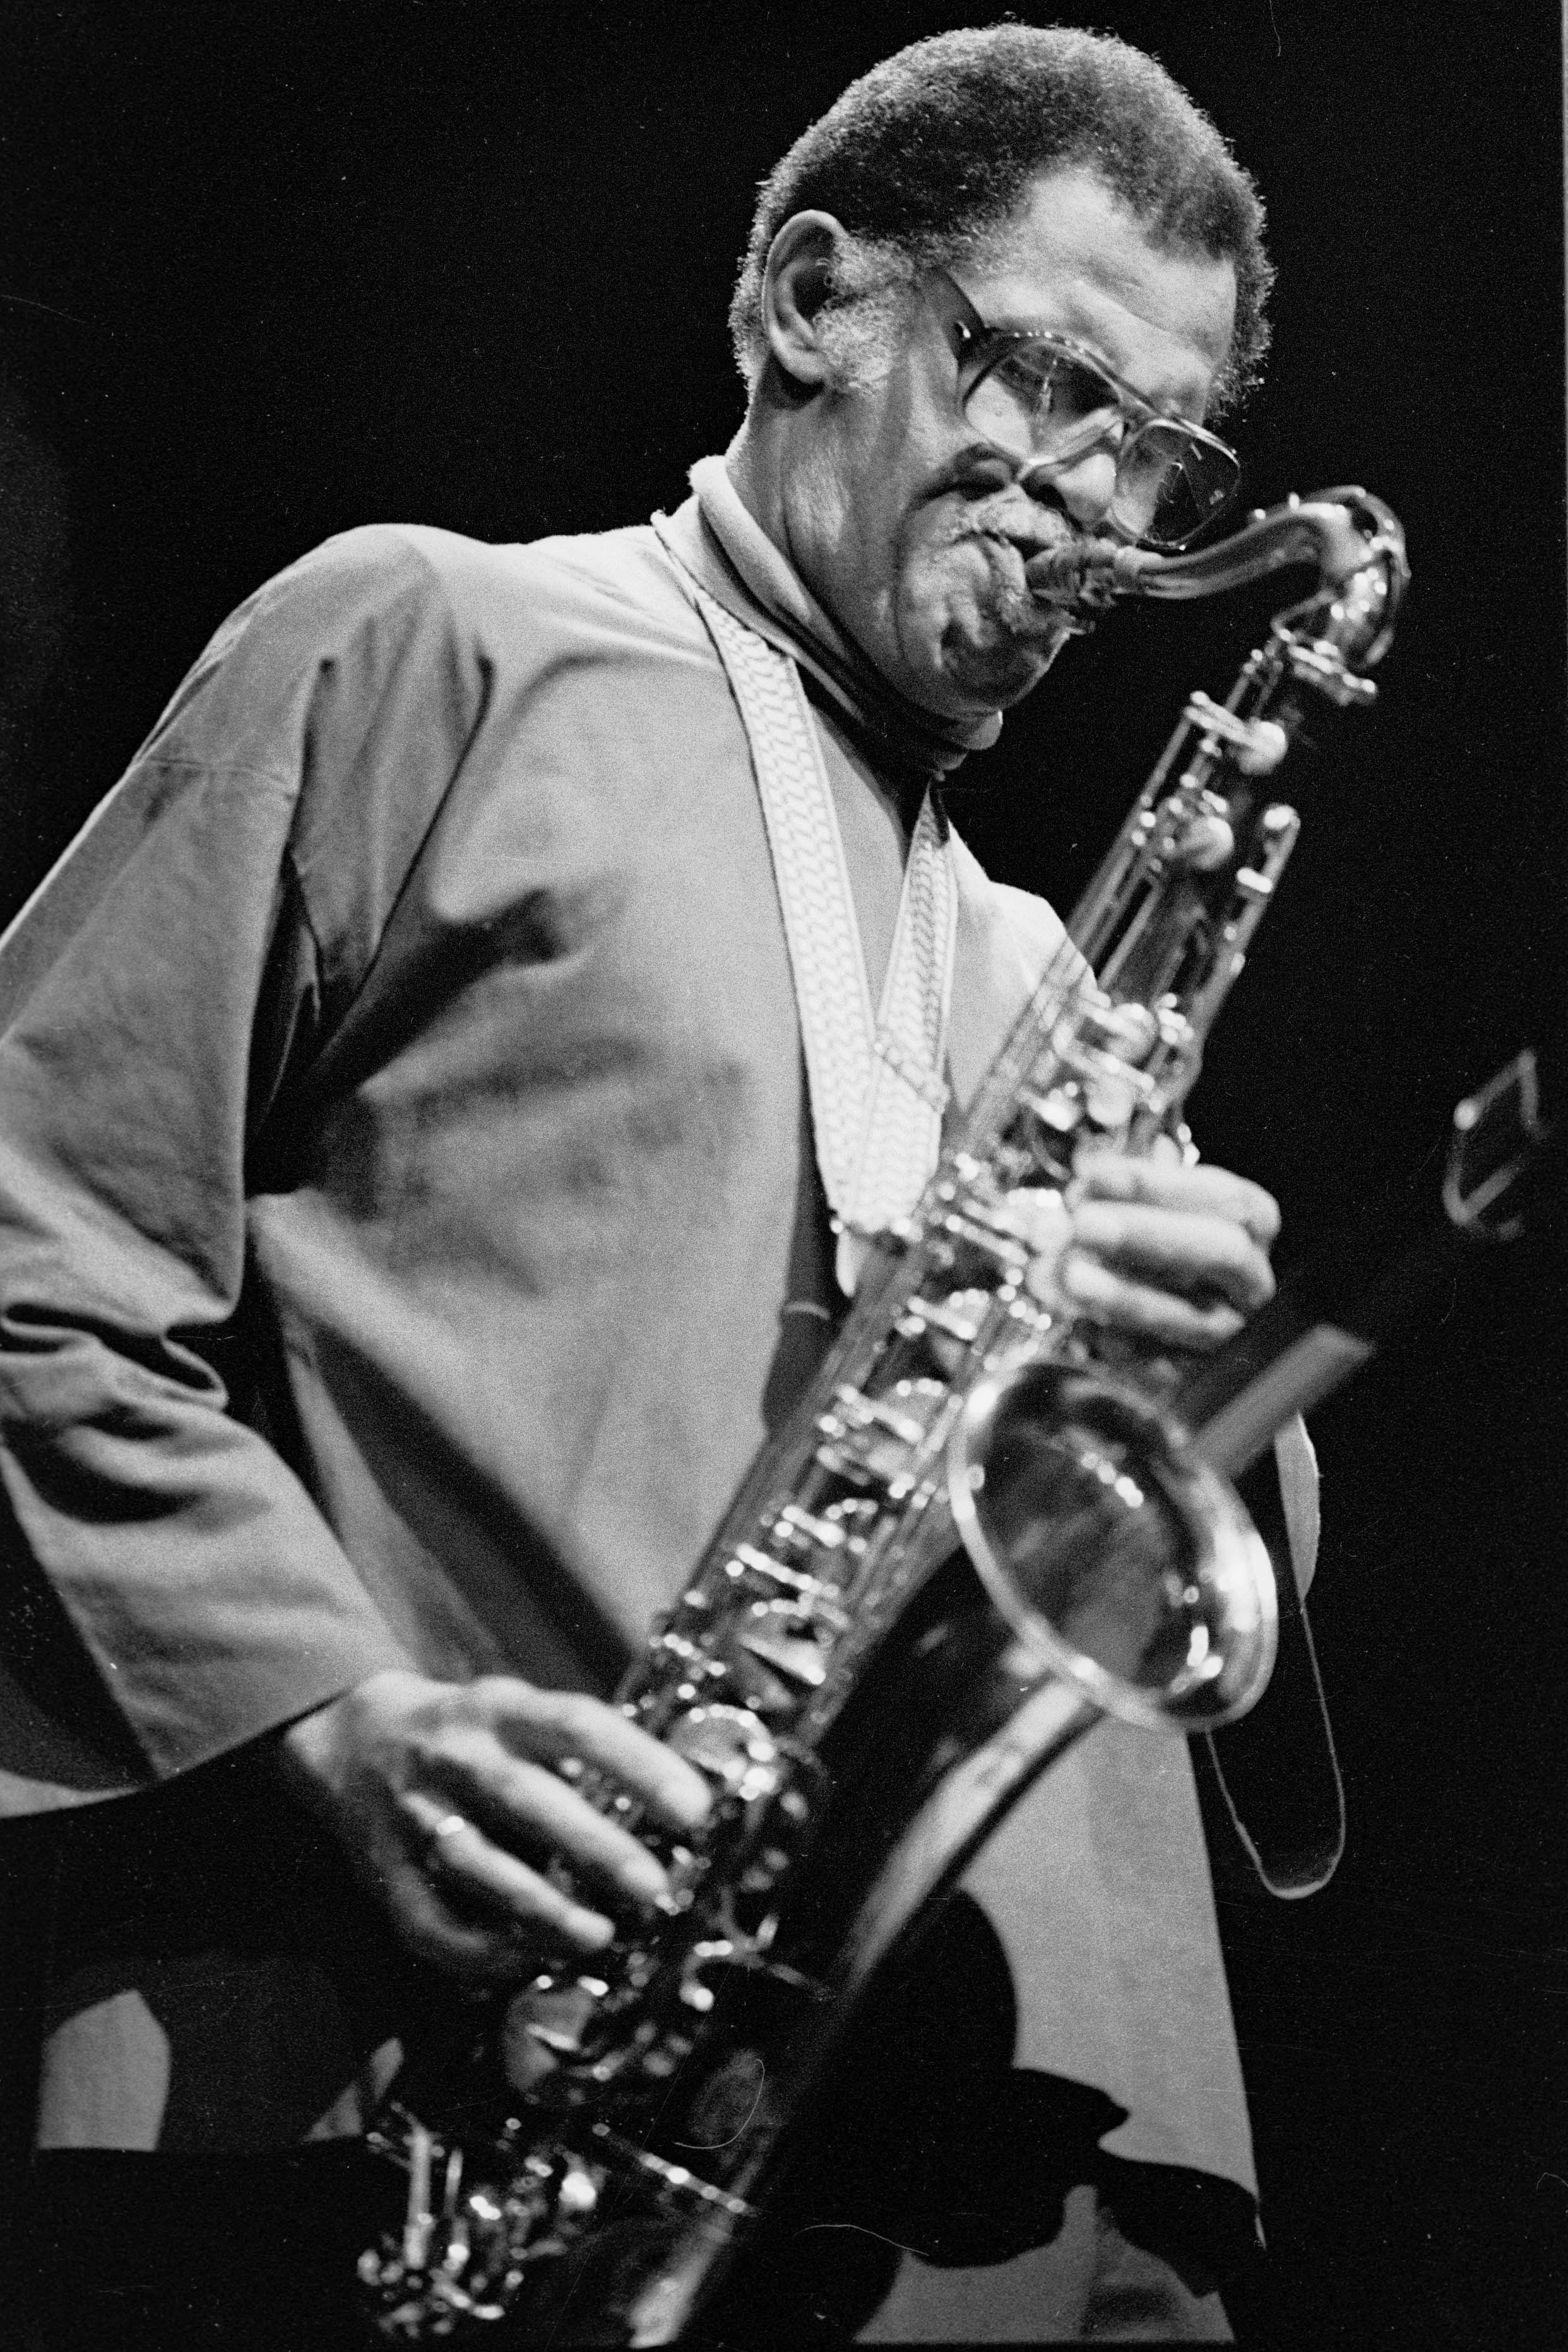 Dexter Gordon at the Power Center, October 21, 1977 image